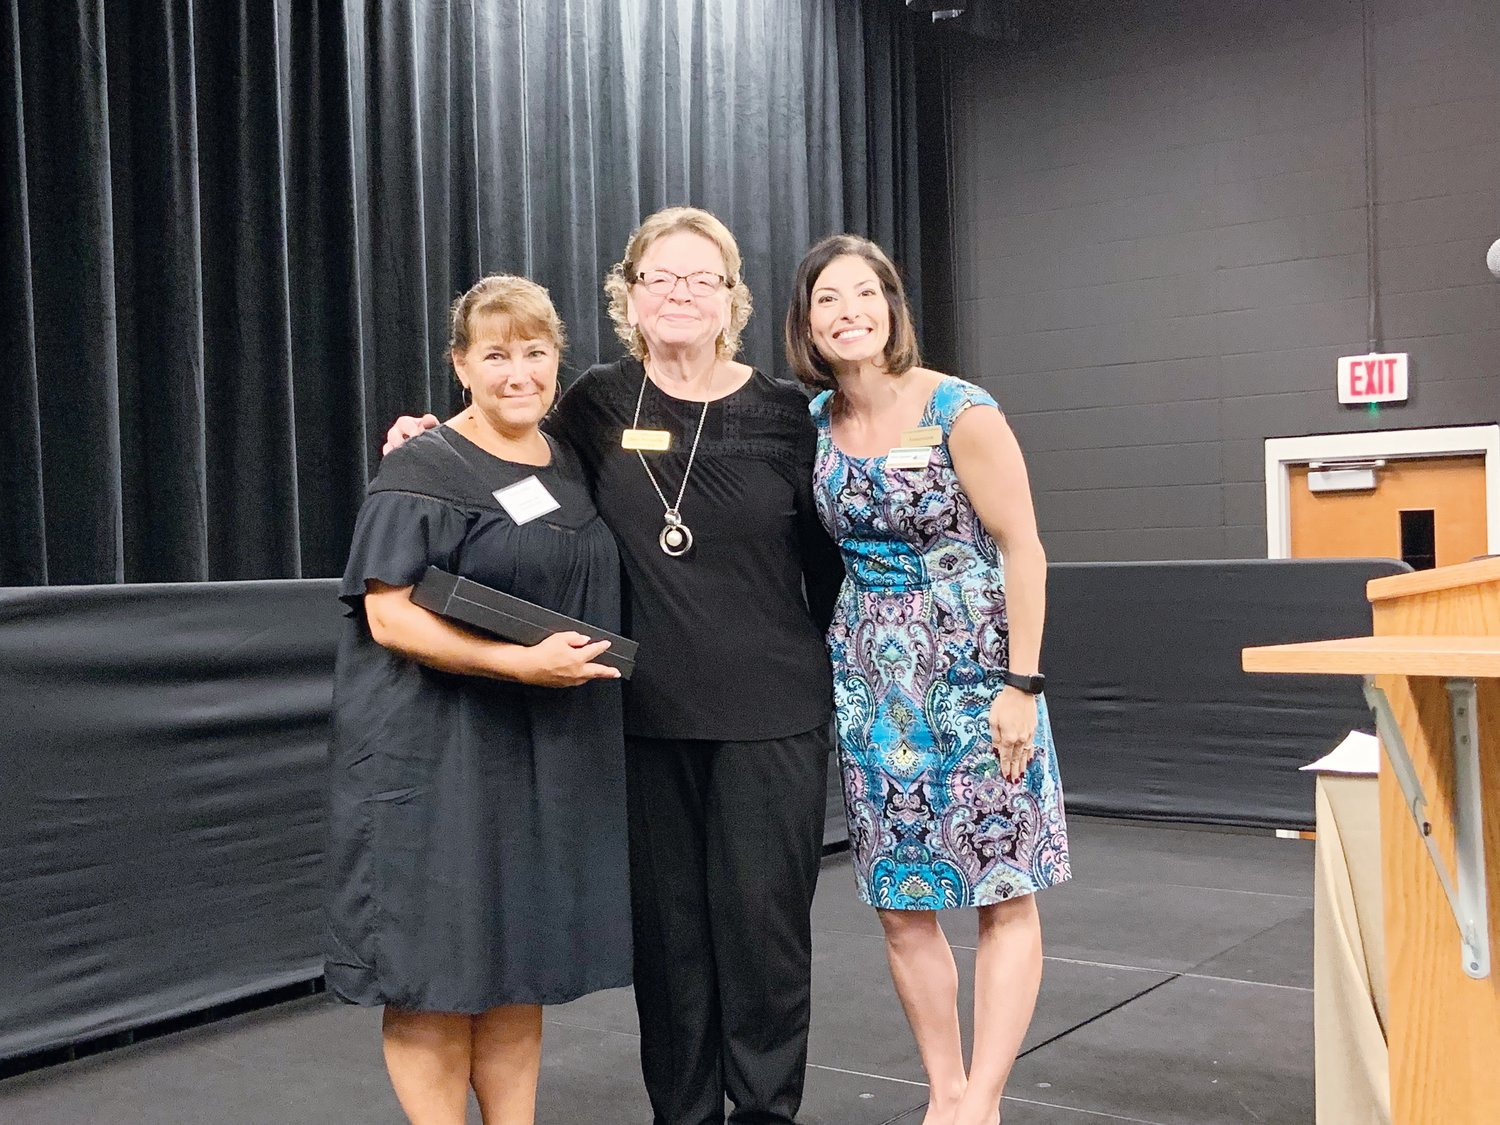 Ronda Stubbs, left, marketing director for Cambridge Hills Assisted Living, receives the award for Chamber Ambassador of the Year, presented by Cindy Poindexter of the Chatham Chamber, middle, and Erica Sanders, at the Chatham Chamber of Commerce's Annual Meeting last week in Pittsboro.